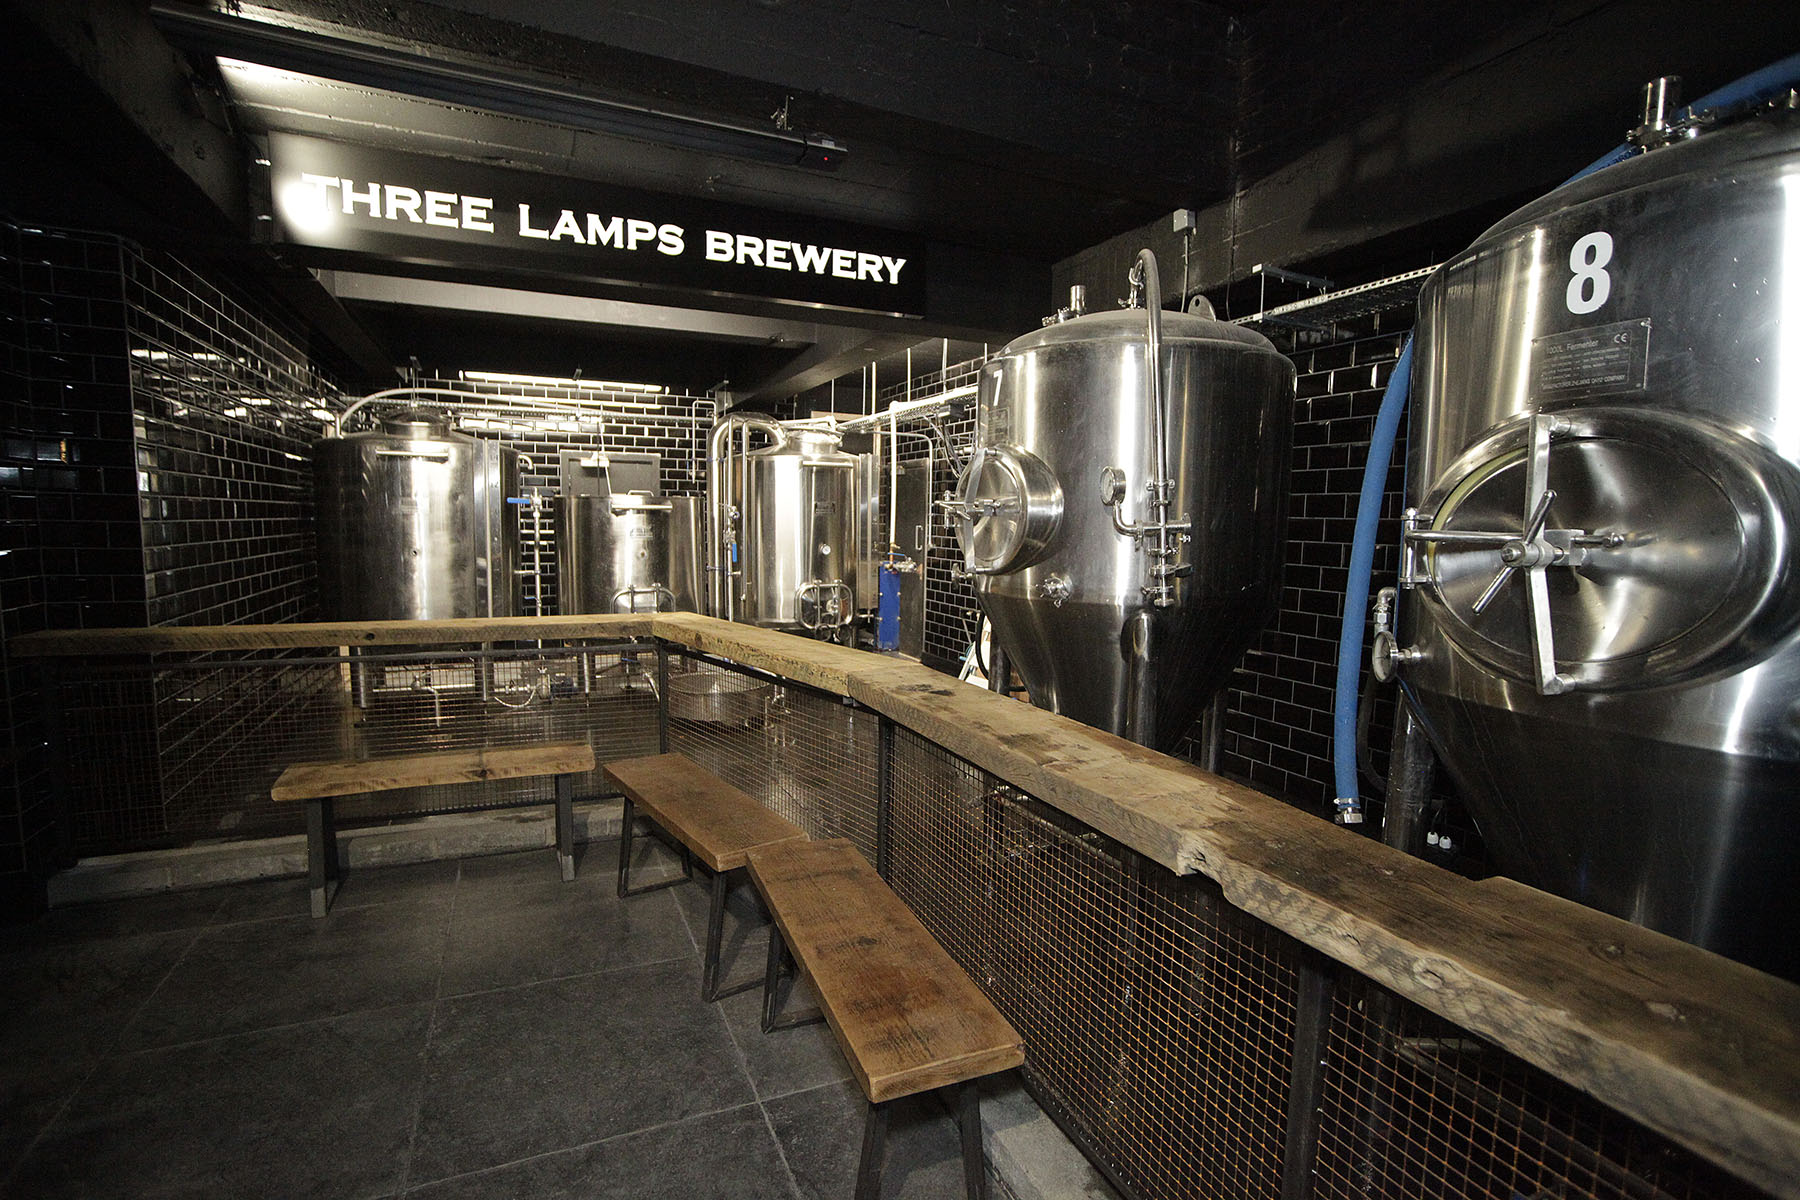 Brewery - Our on-site brewery is located on the same floor as the Craft Beer Bar, often playing live music. You can therefore taste great beer while listening to your favourite bands.